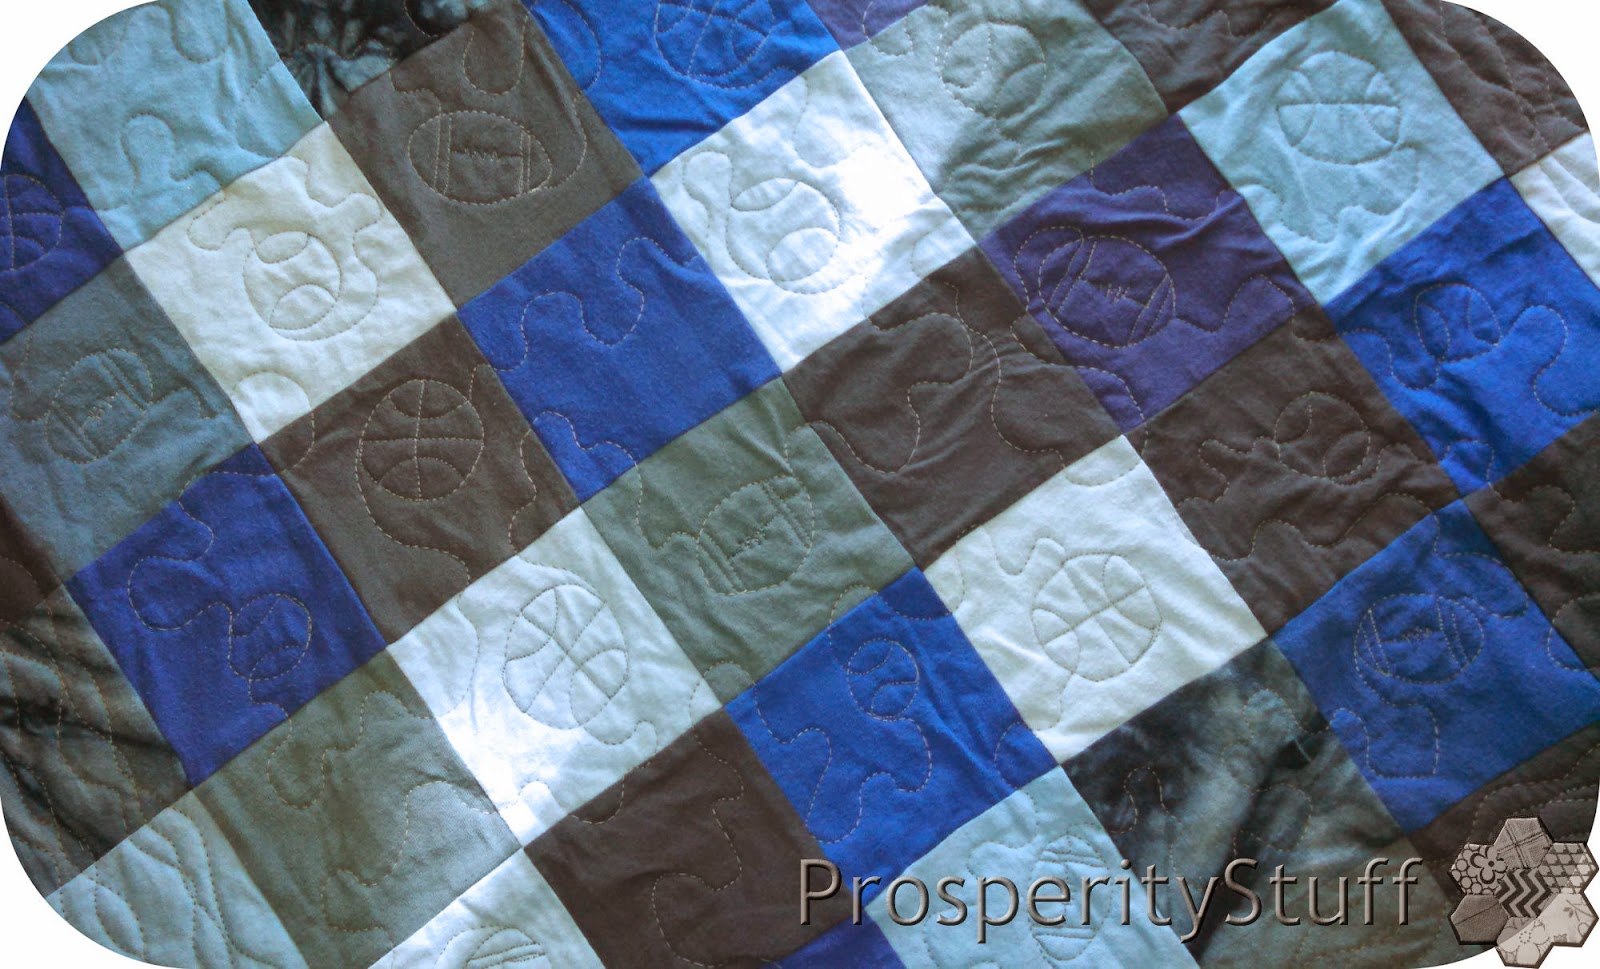 ProsperityStuff Quilts: Free-motion quilting football, baseball, basketball